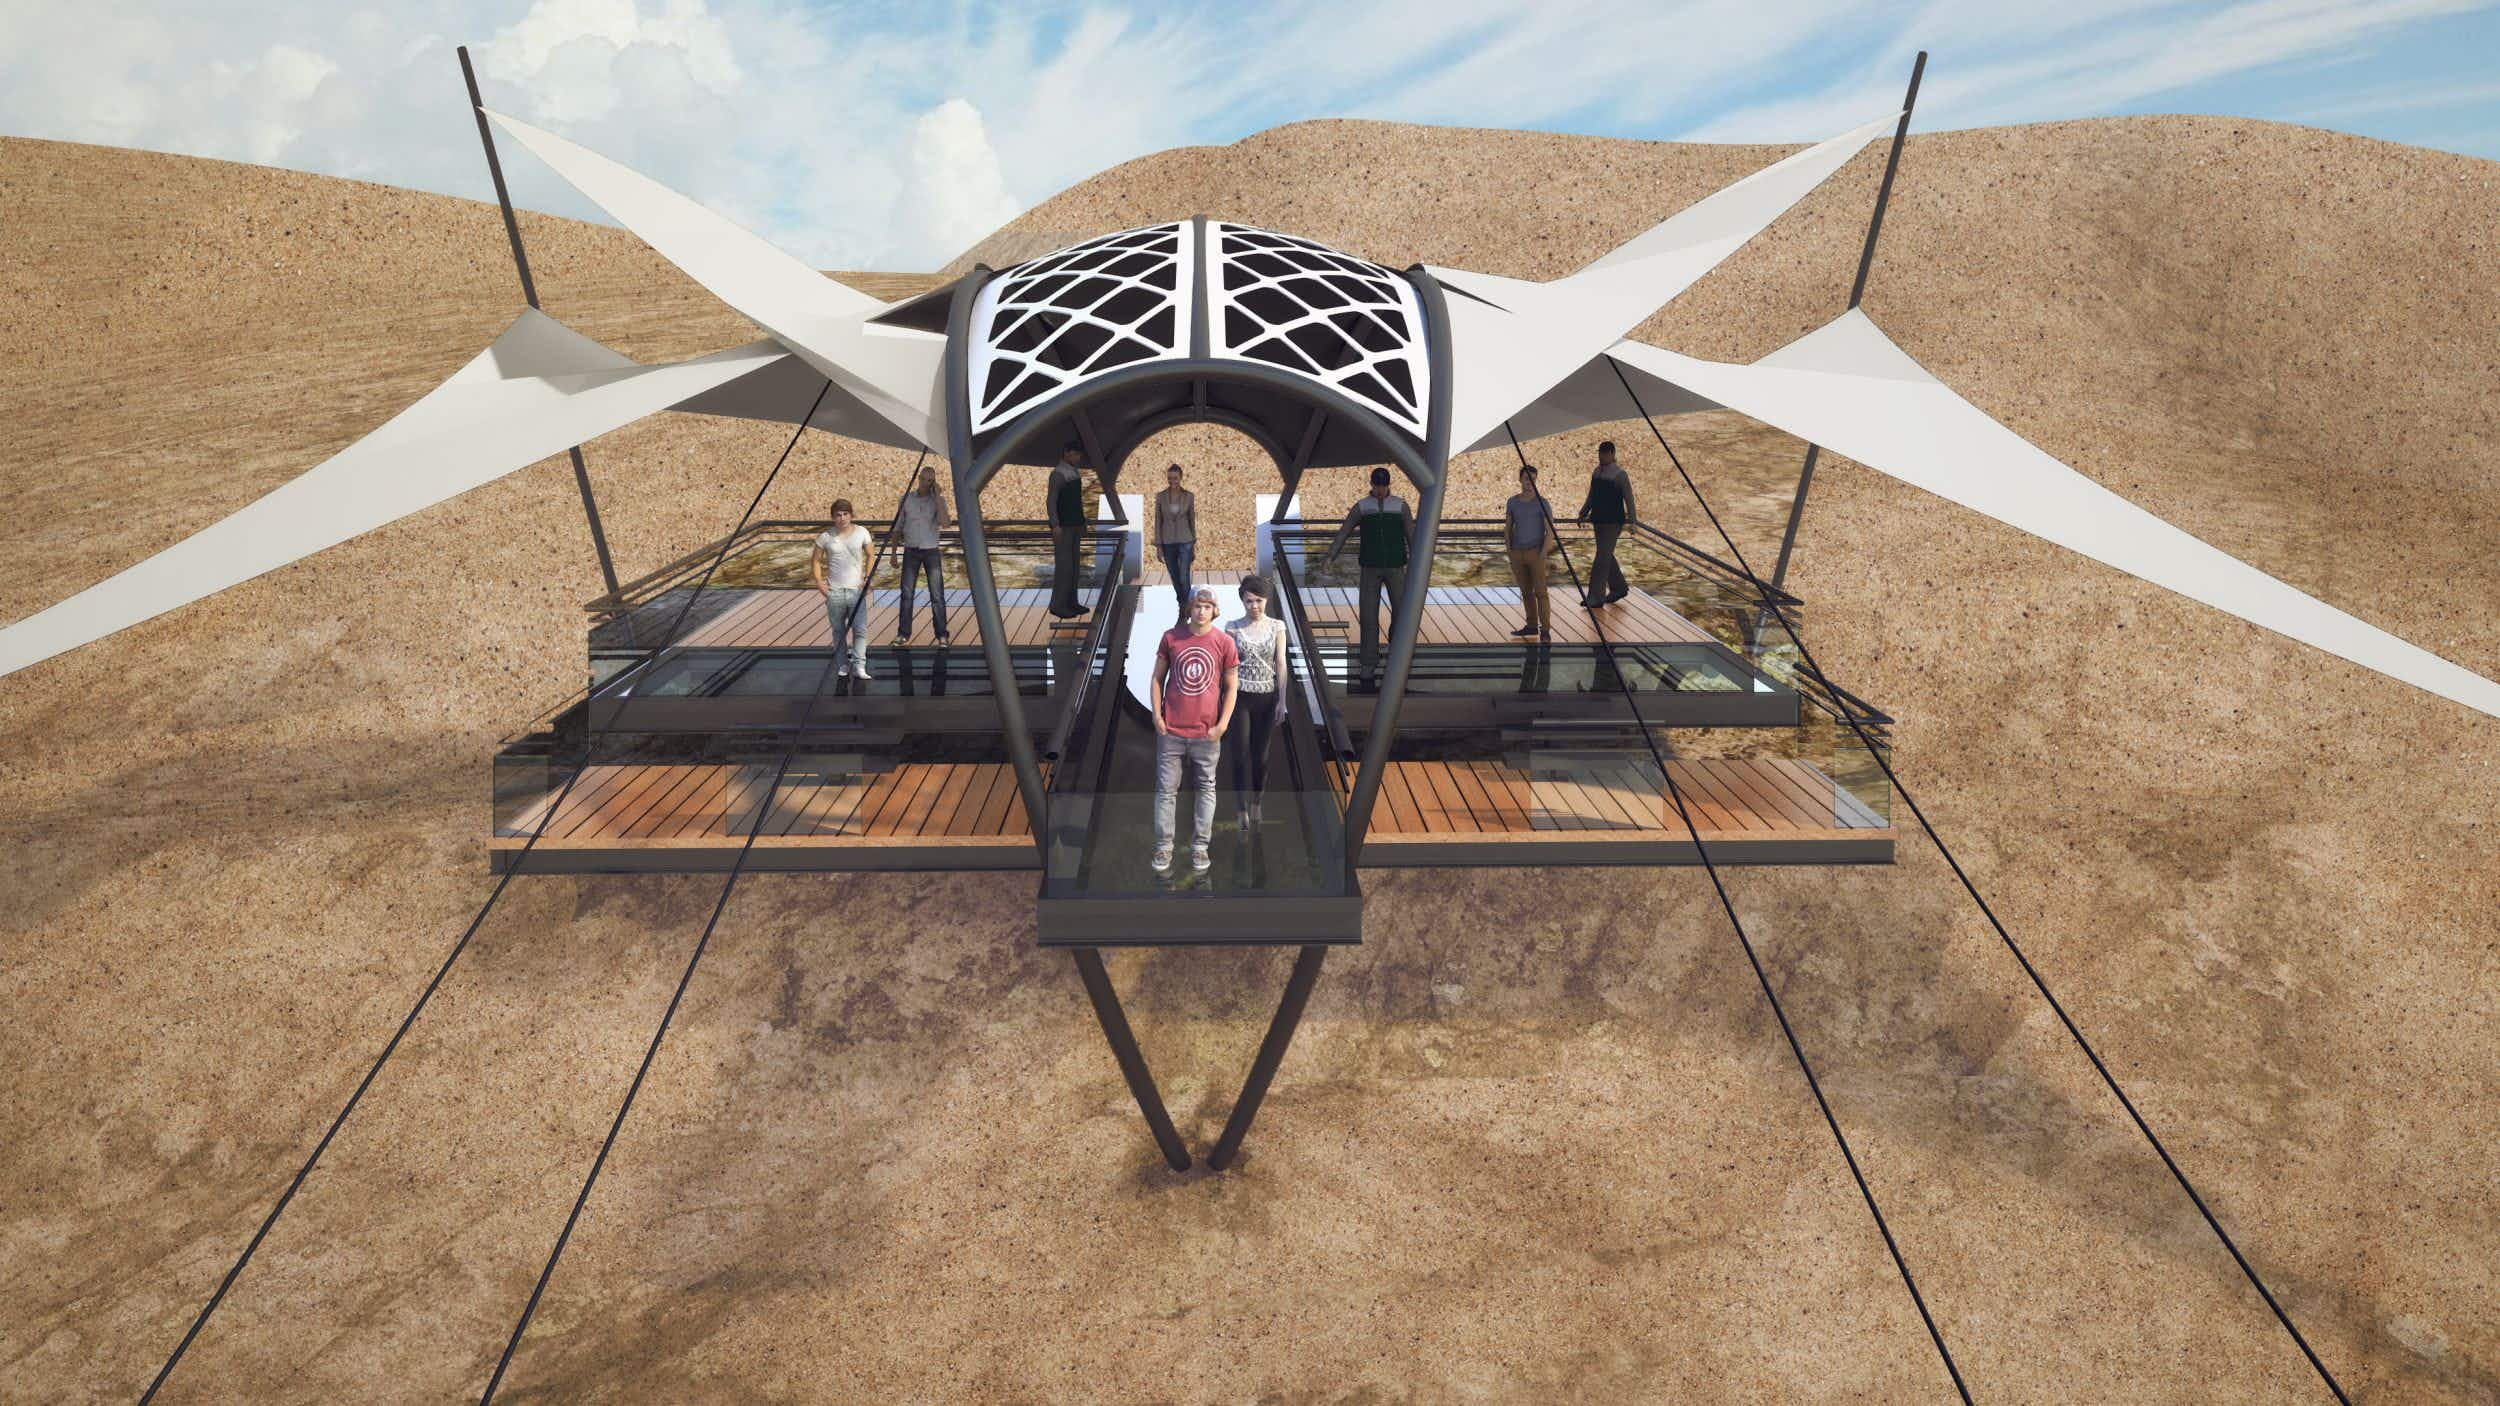 The world's longest and highest zip-line is to open this year in the United Arab Emirates